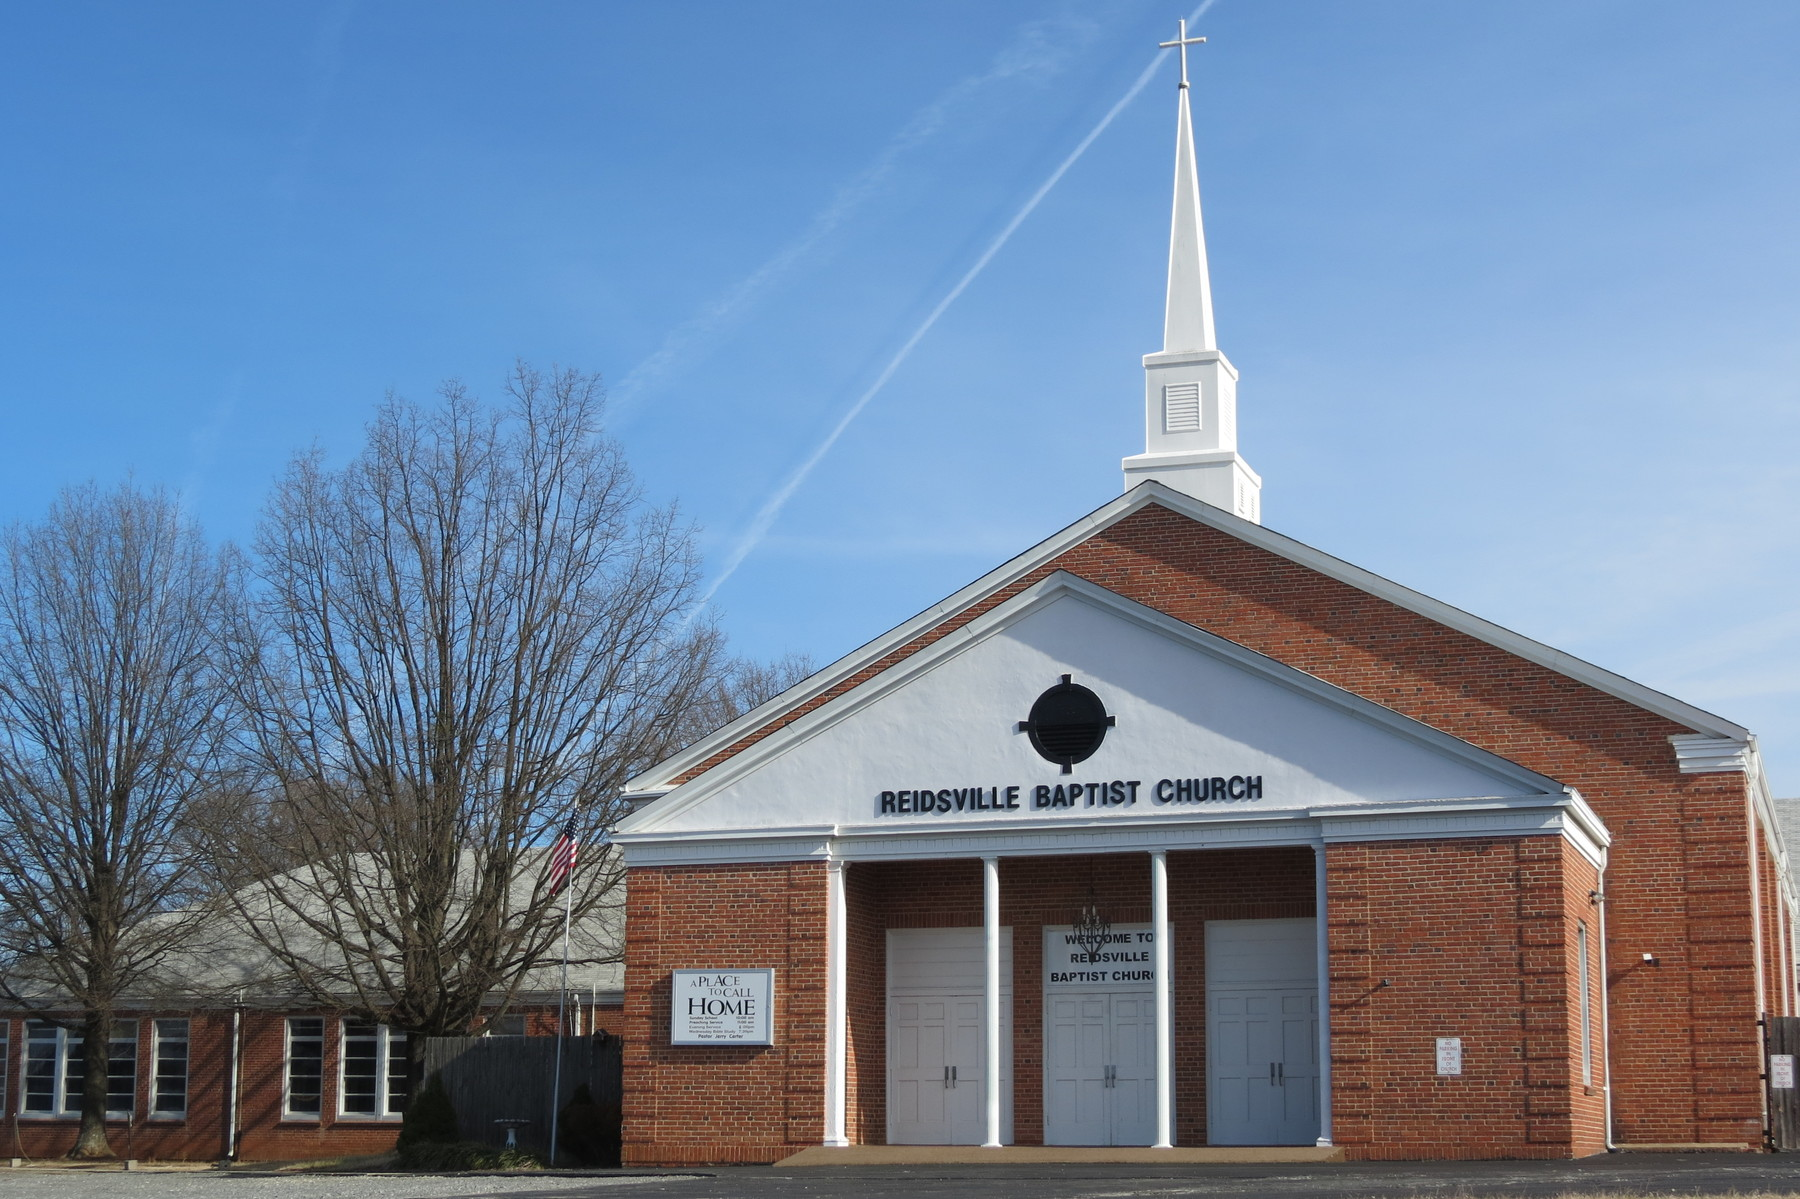 Reidsville Baptist Church: Tithes and Offerings